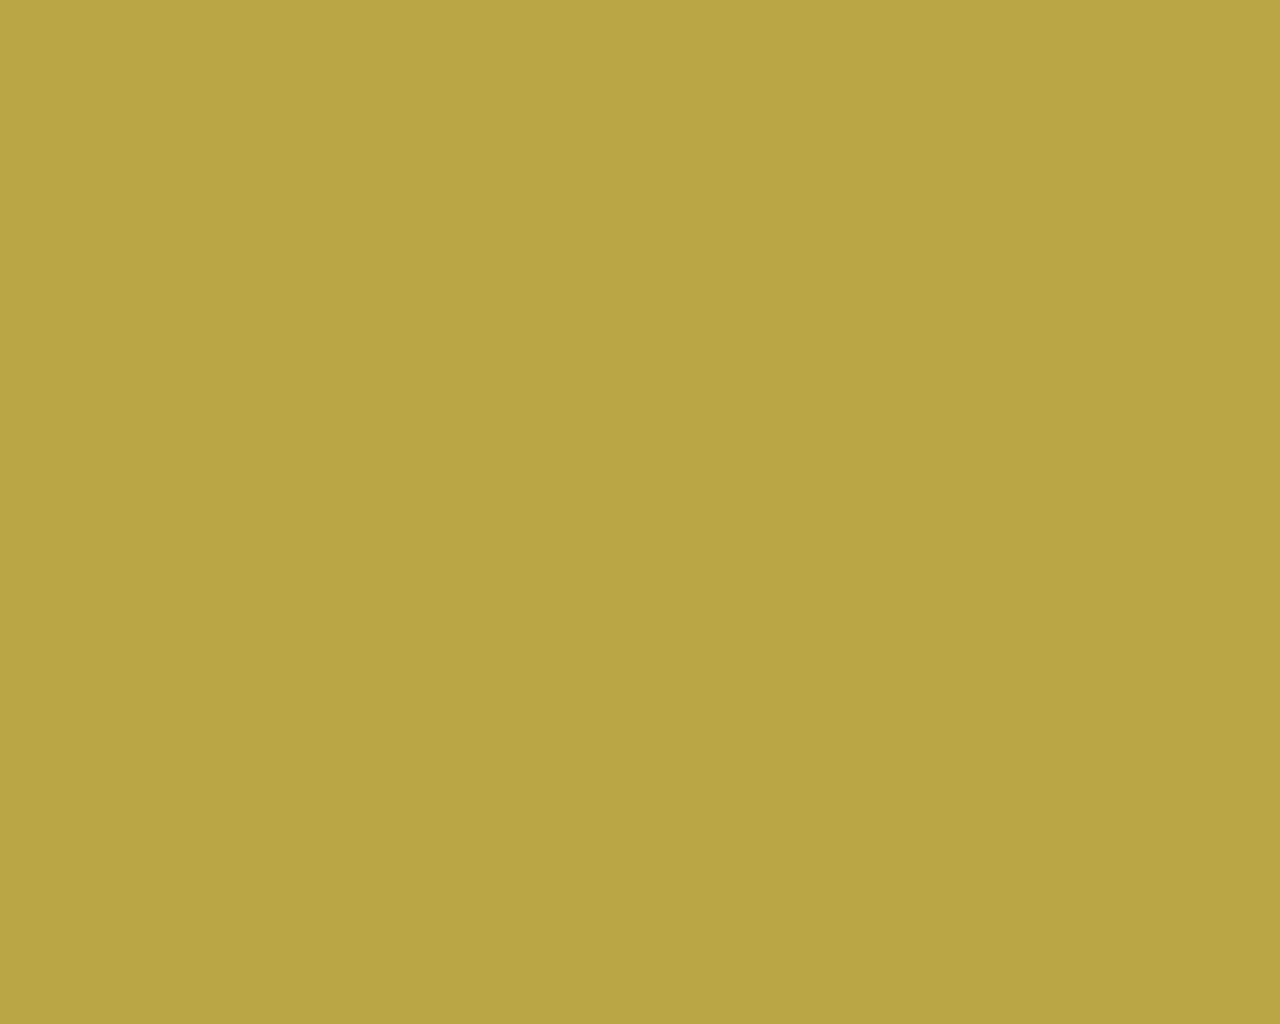 1280x1024 Brass Solid Color Background